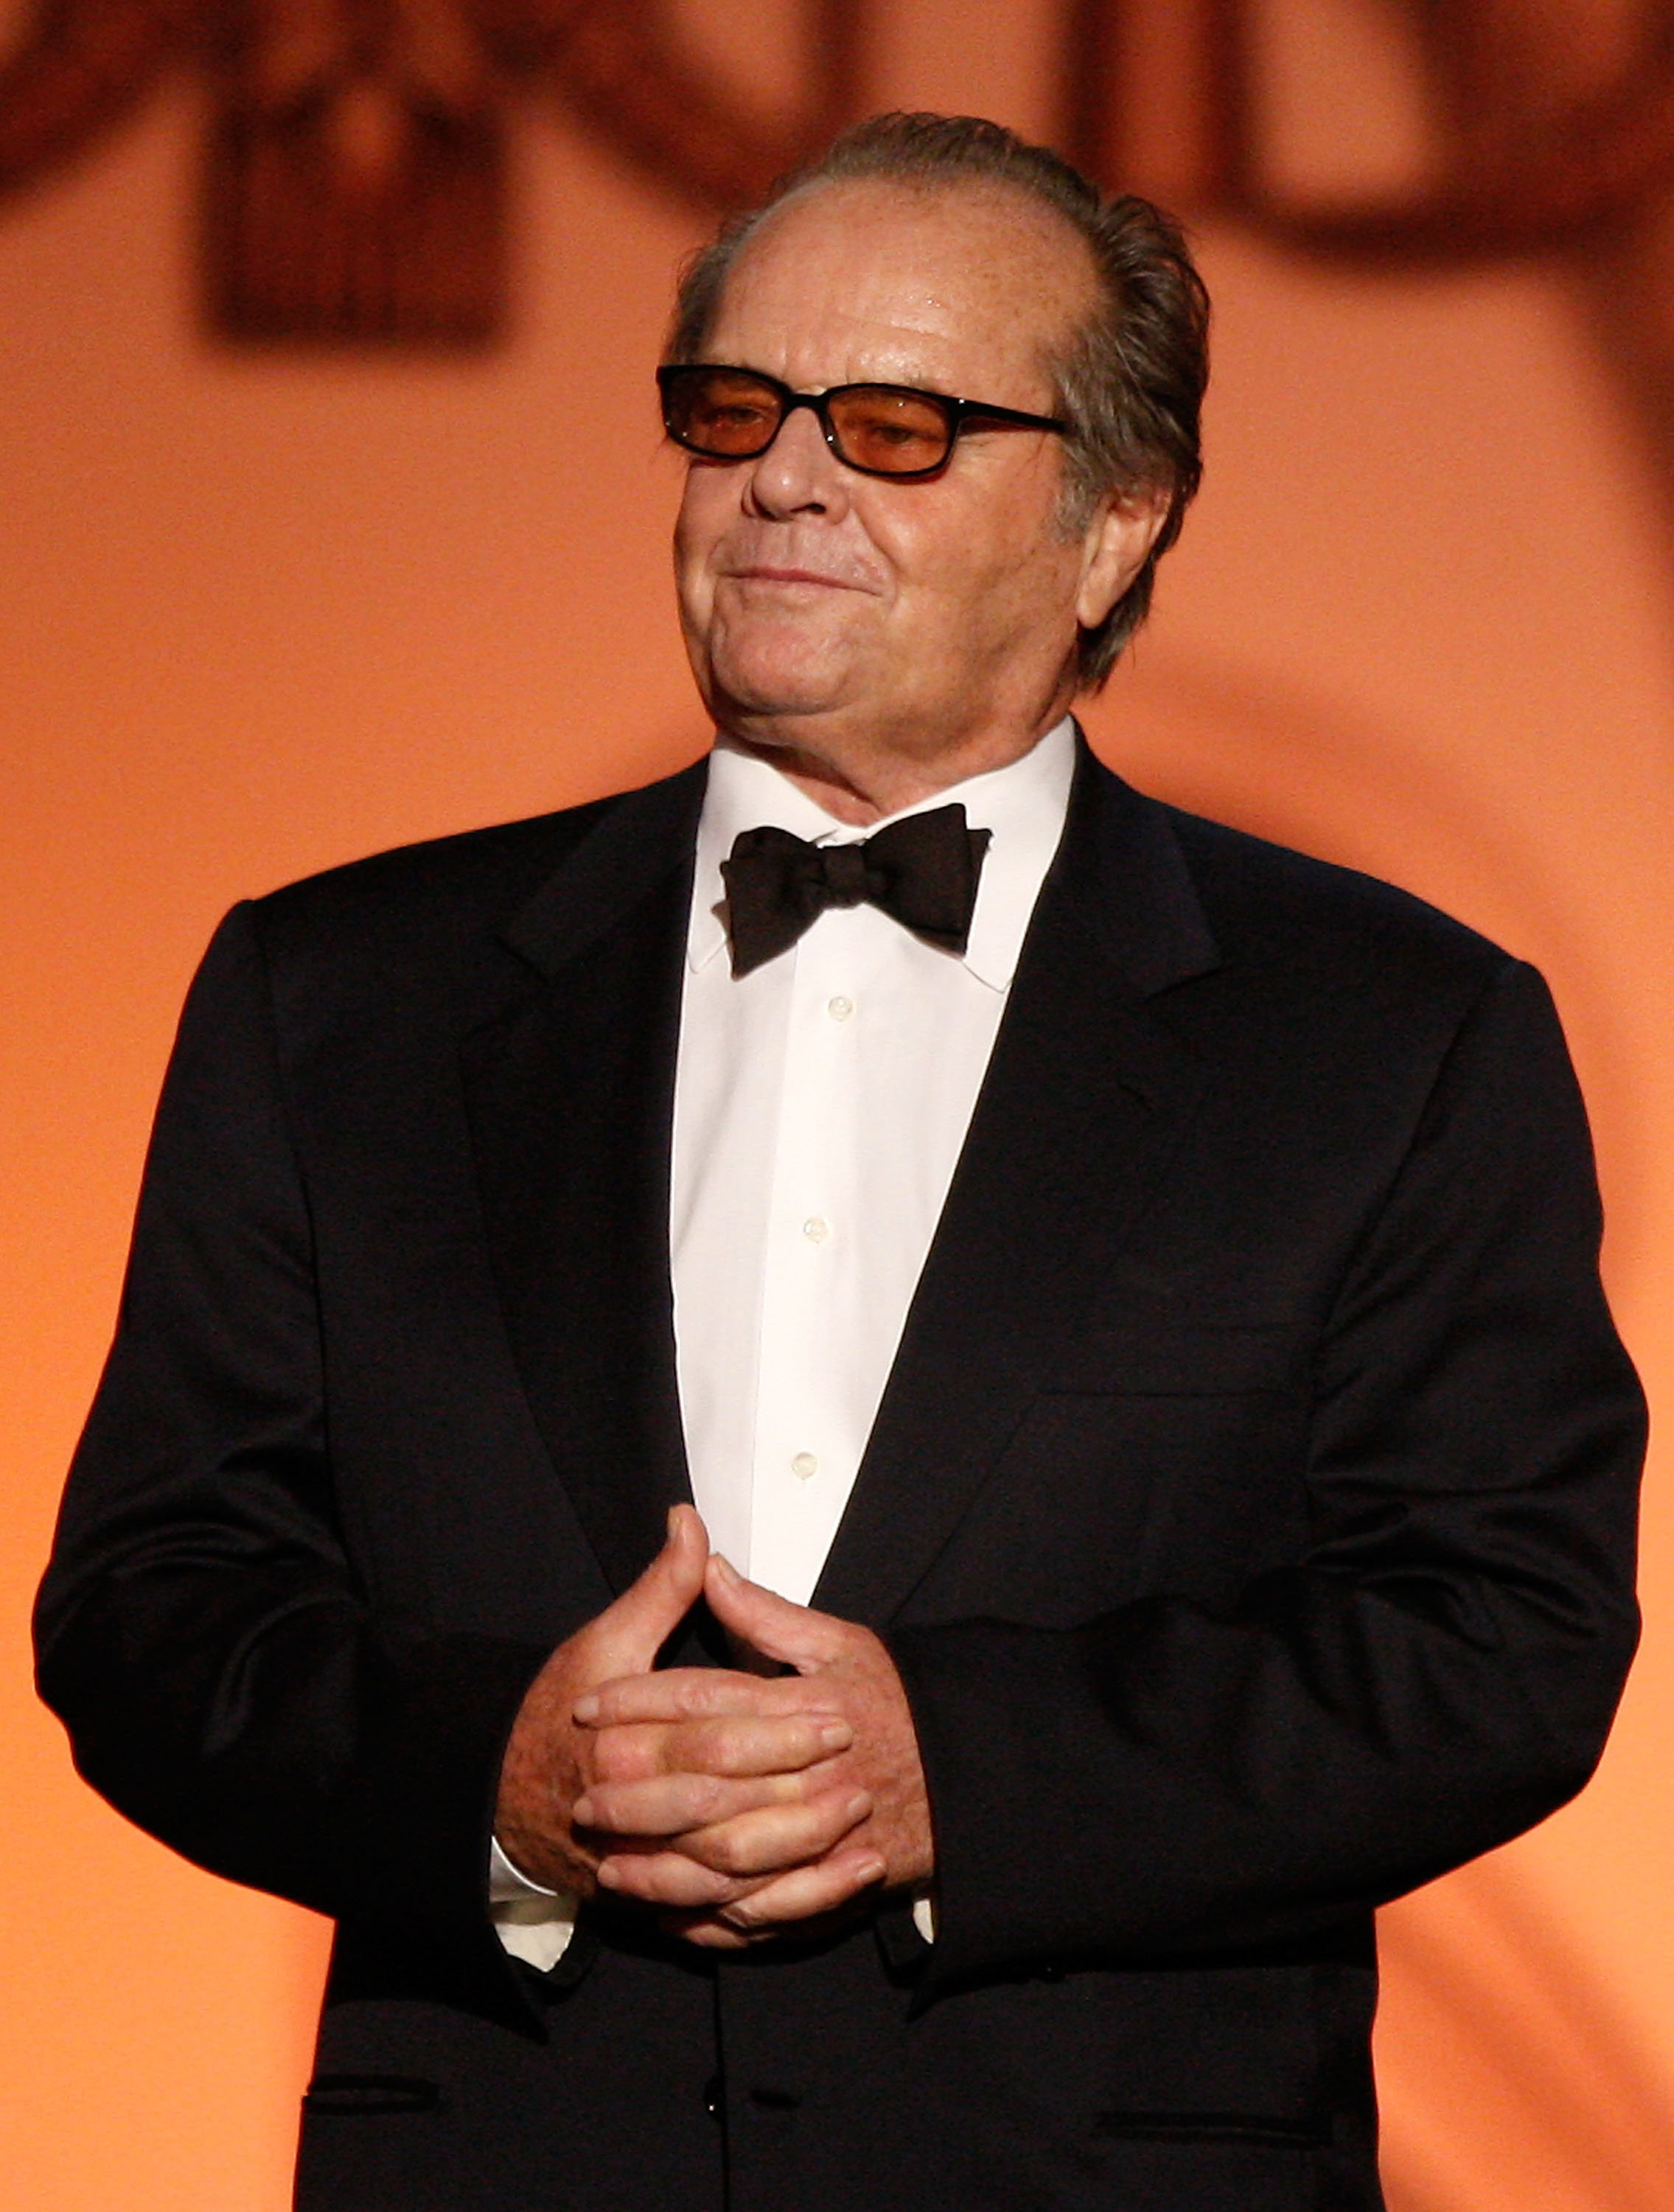 Jack Nicholson speaks onstage during the AFI Life Achievement Award: A Tribute to Michael Douglas at Sony Pictures Studios on June 11, 2009, in Culver City, California. | Source: Getty Images.